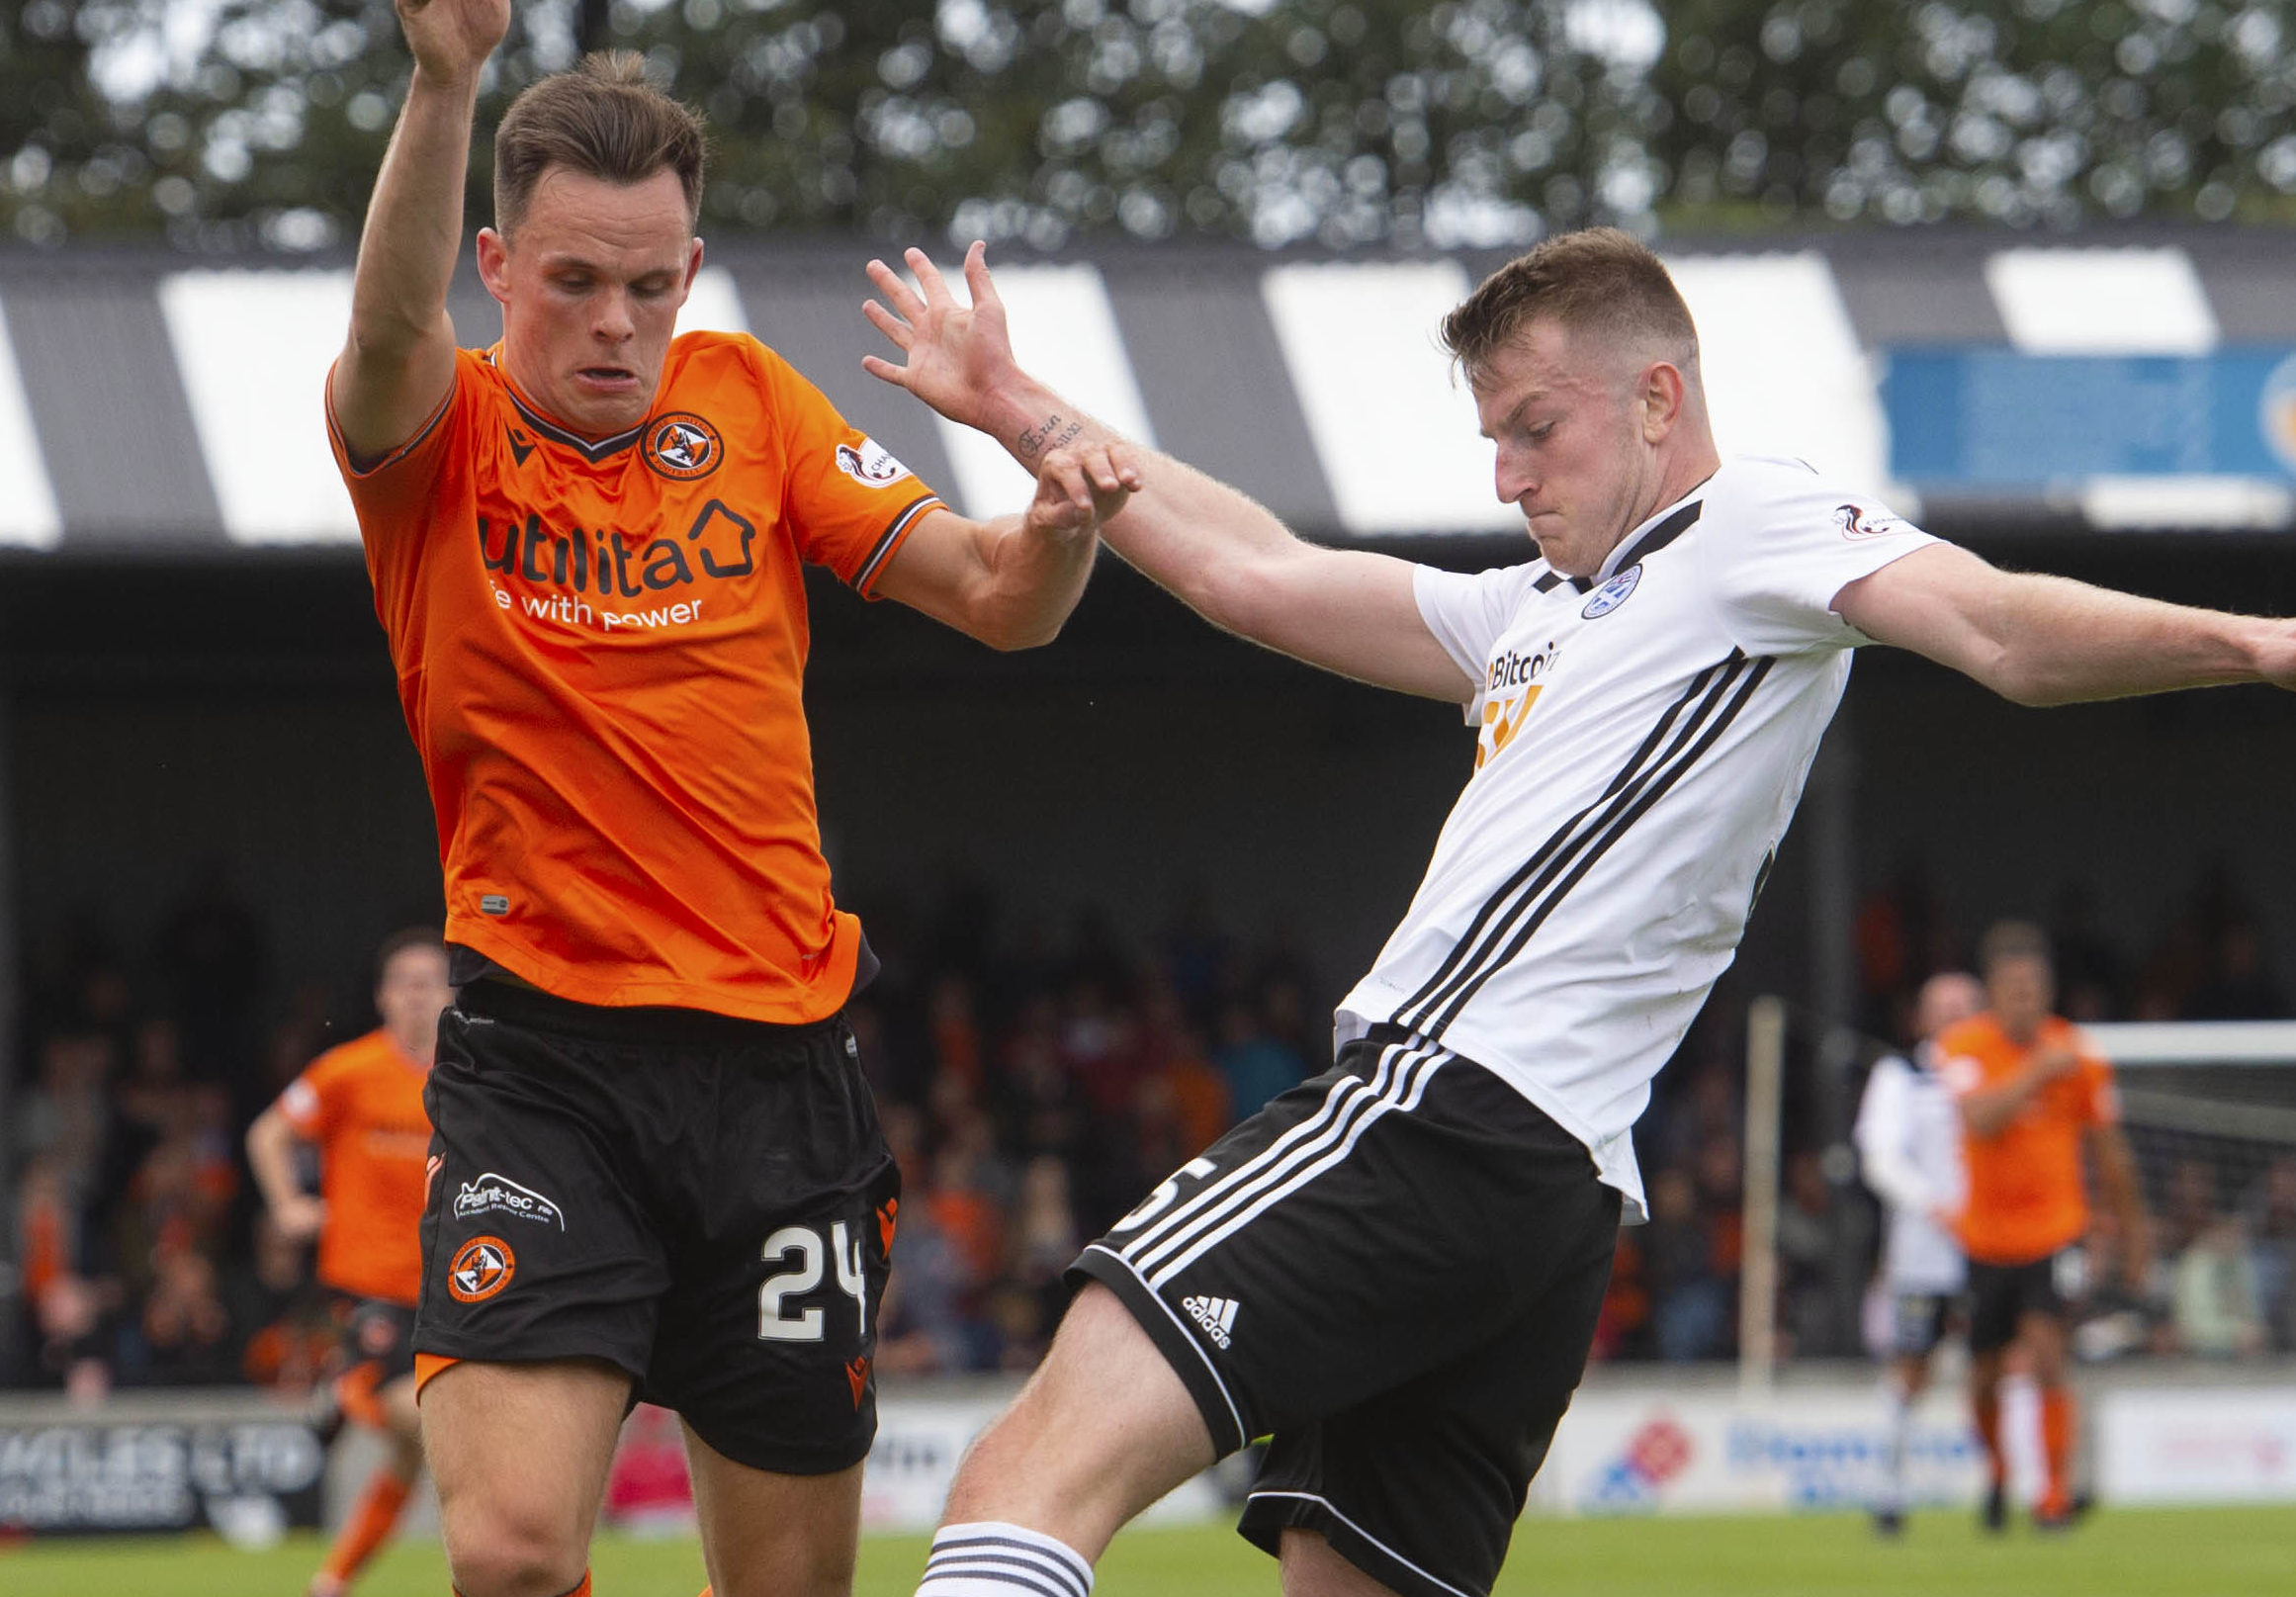 Lawrence Shankland in action.